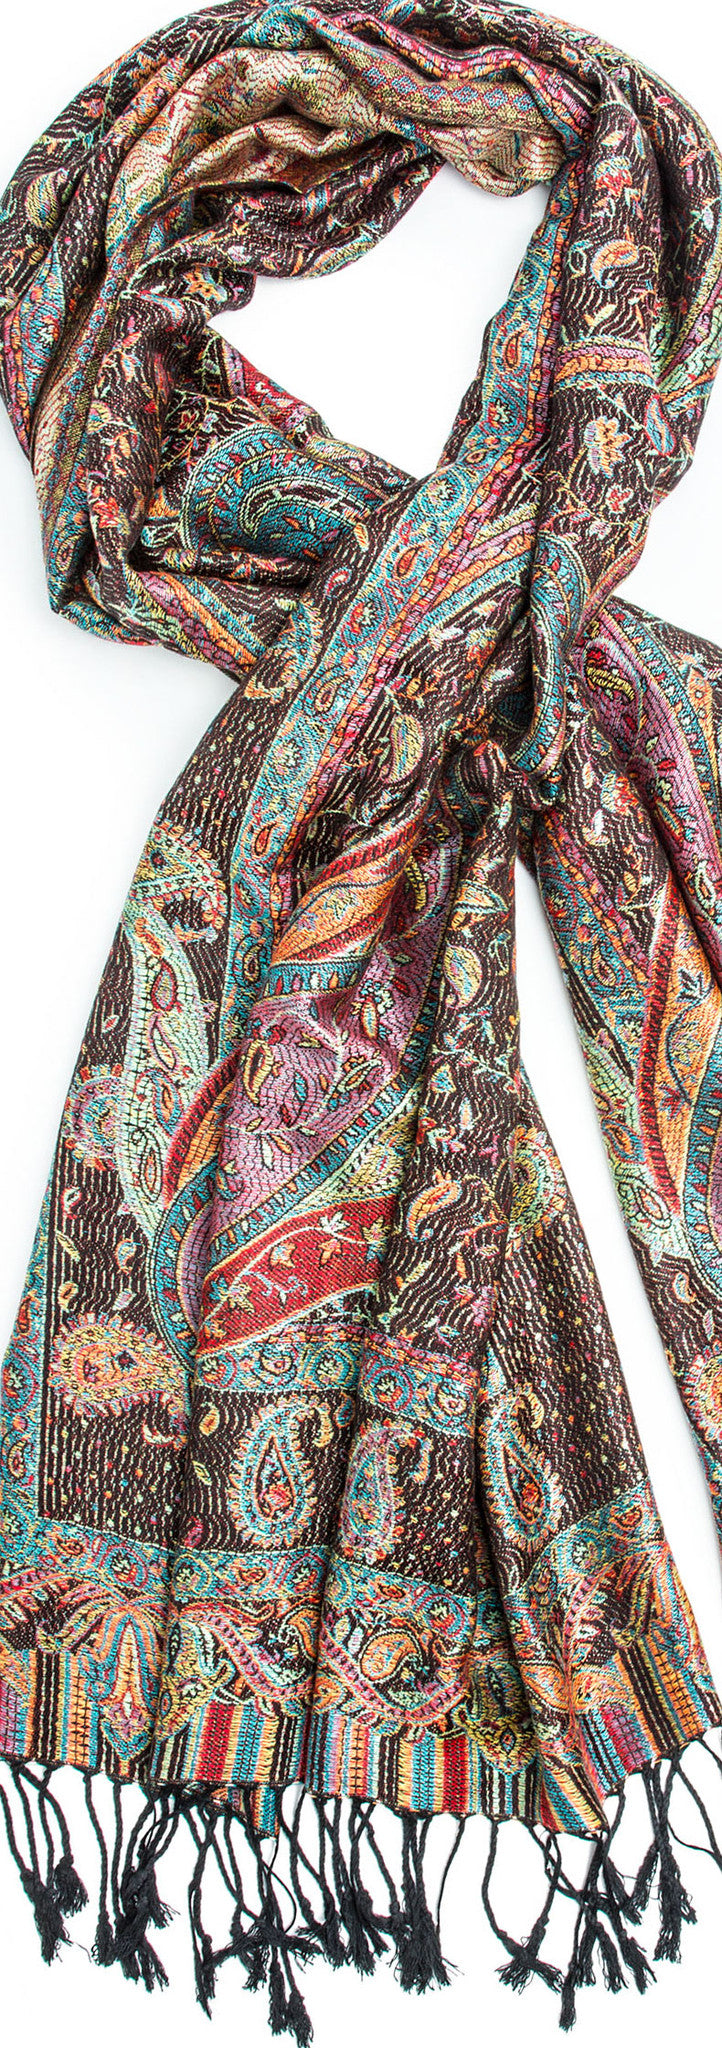 Scarves - Tiaja Scarf, Pashmina Indian Paisley Traditional Jacquard Scarf - hand made in India -() Bohomonde  - 8